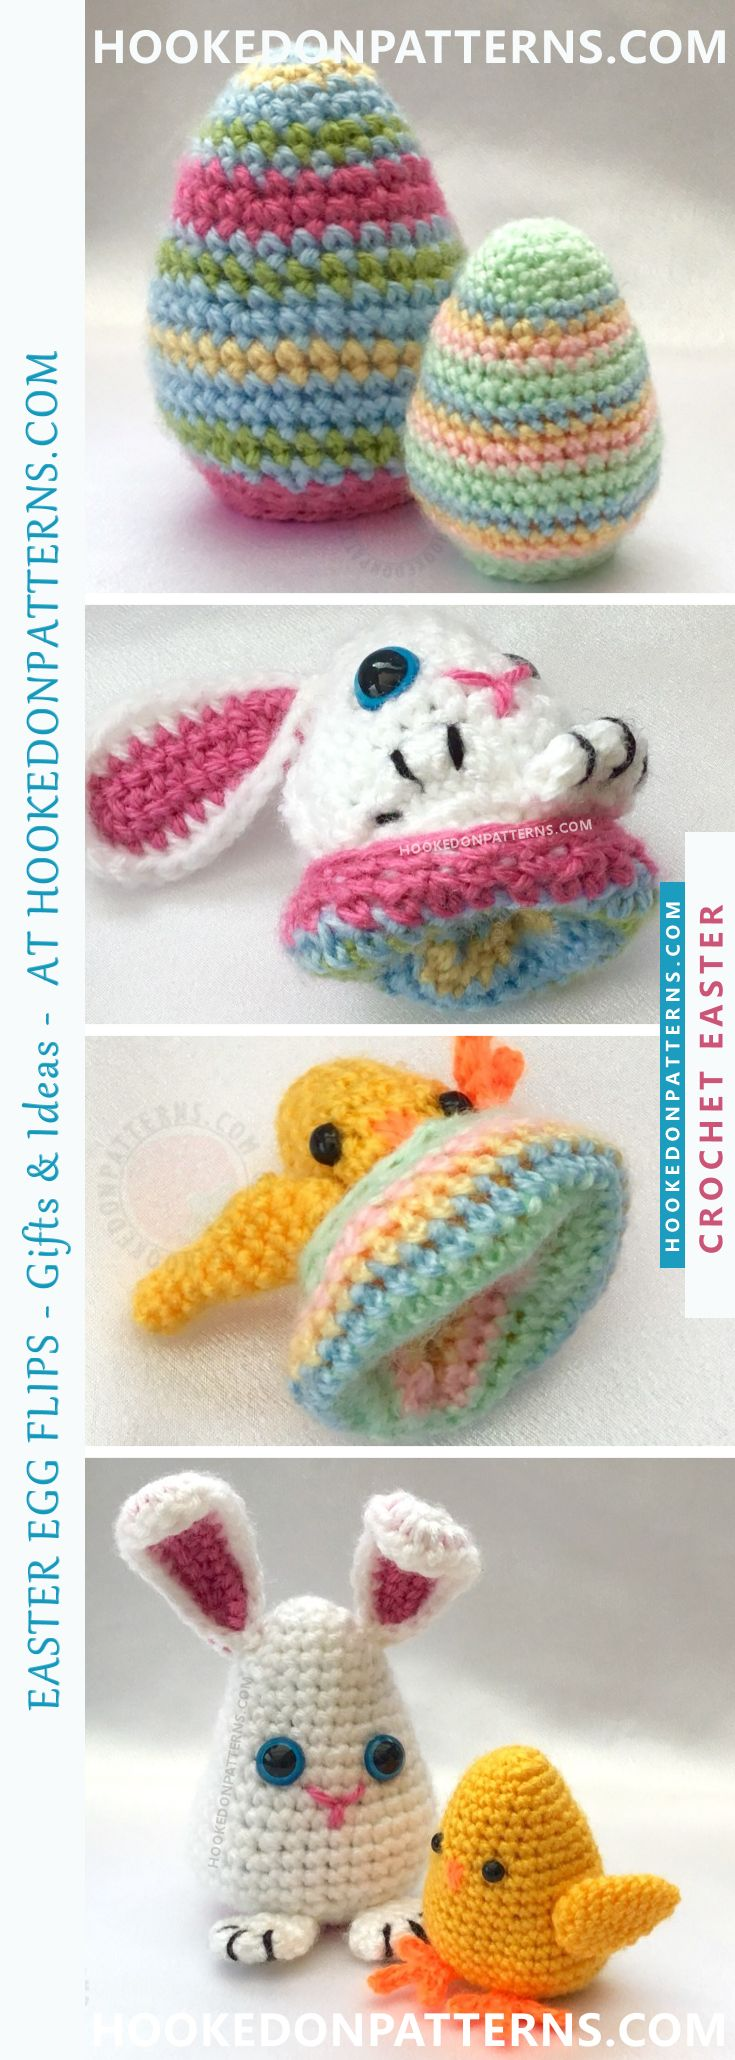 Easter Egg Crochet Pattern - Easter Egg Flips | Easter crochet ...